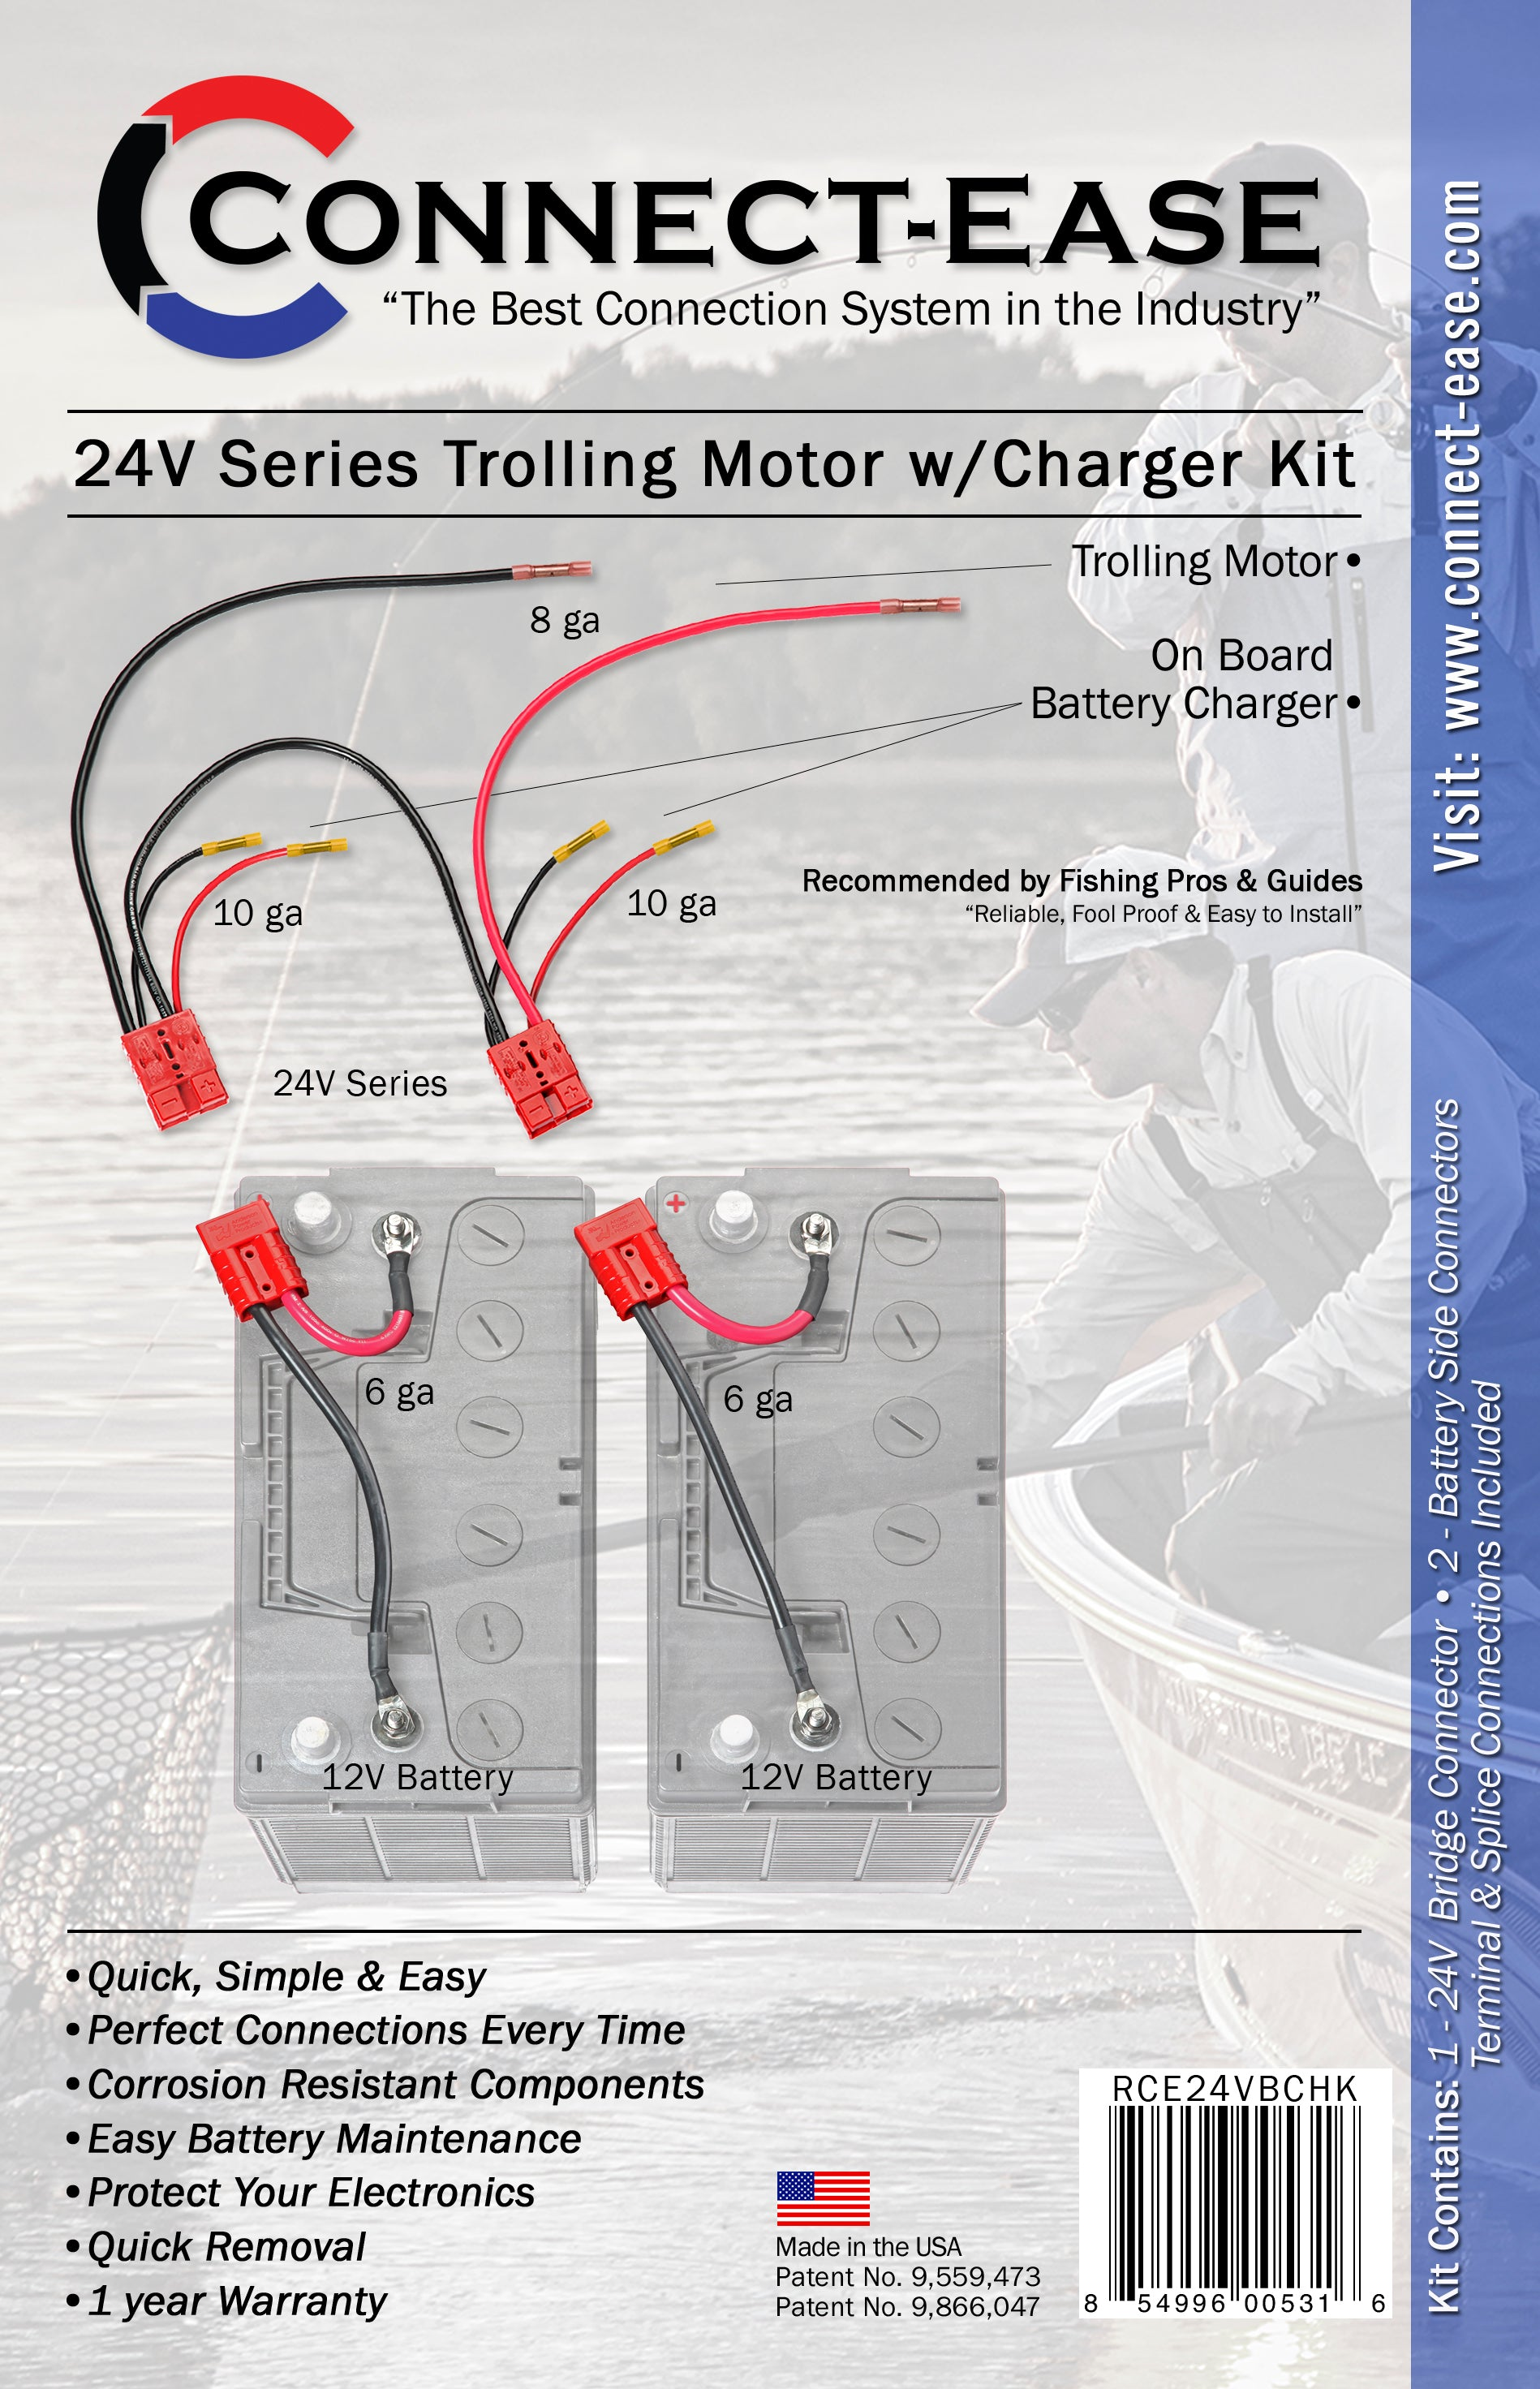 12 24 trolling motor wiring diagram 24 volt series trolling motor connection kit with on board  trolling motor connection kit